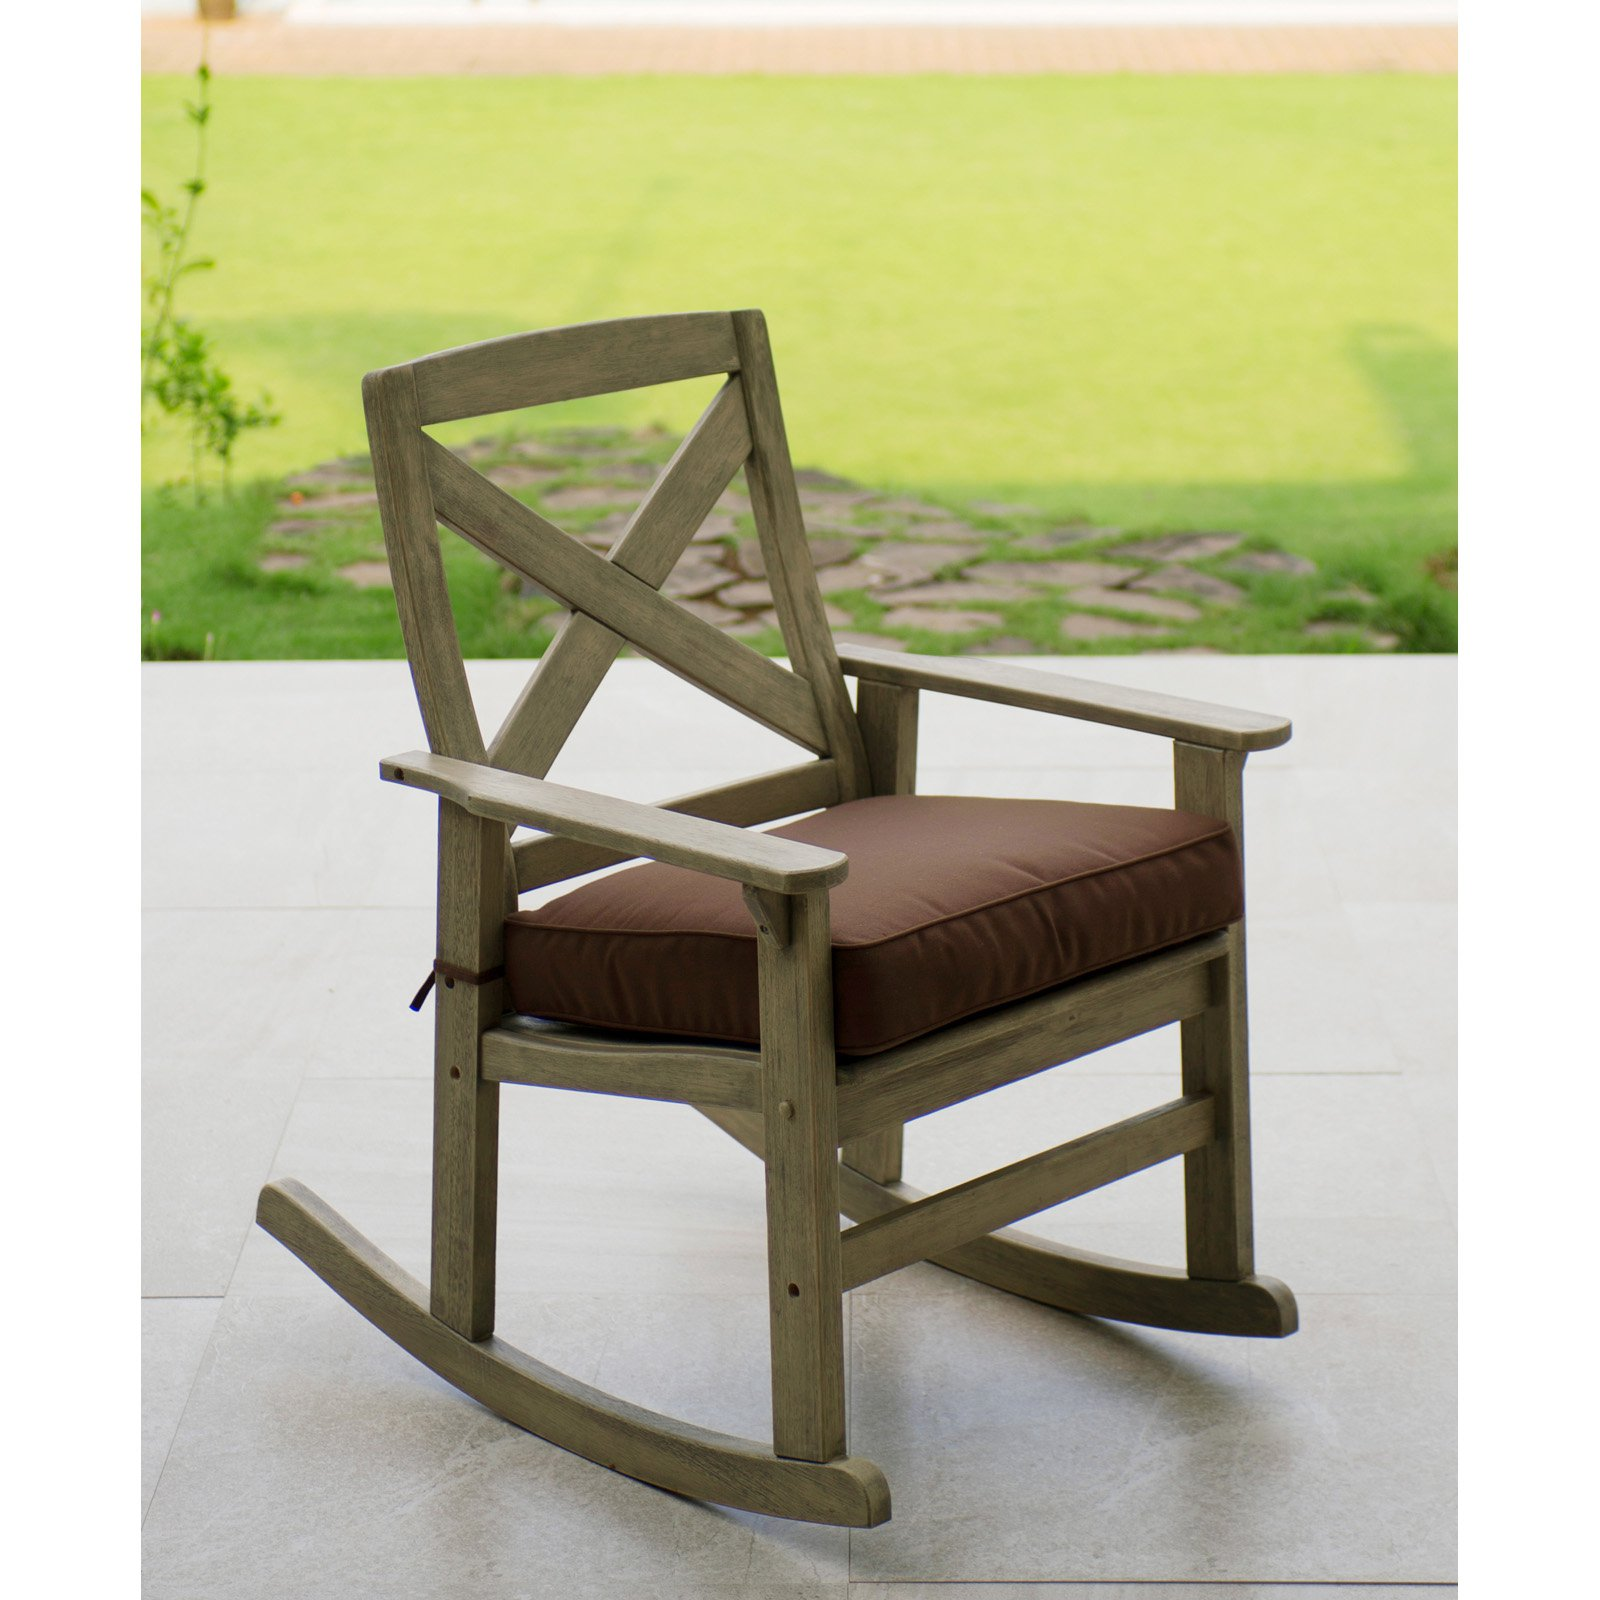 Cambridge Casual West Lake Patio Rocking Chair with Cushion